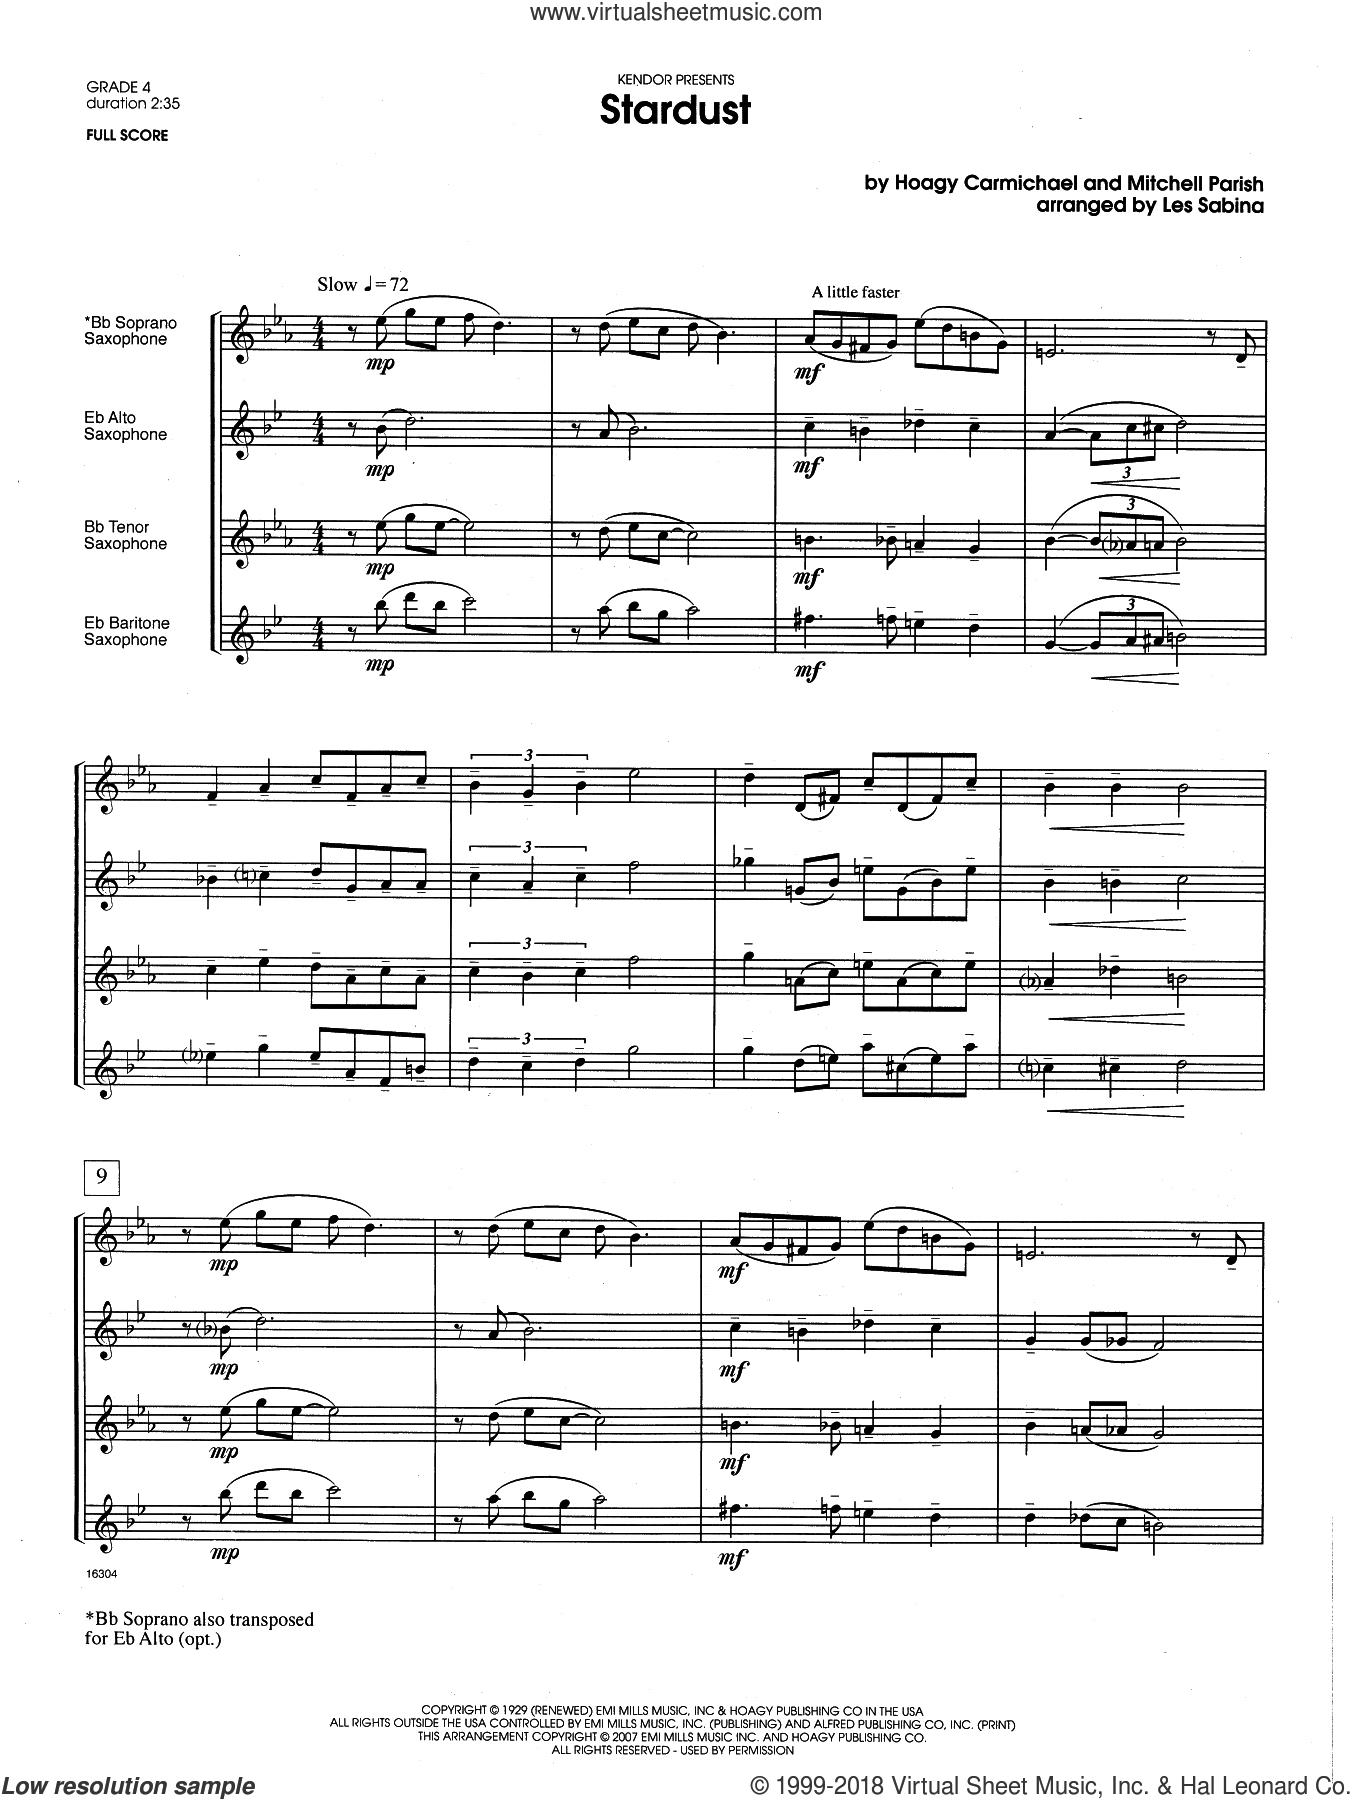 Stardust (COMPLETE) sheet music for saxophone quartet by Les Sabina and Carmichael  & Parish, intermediate skill level